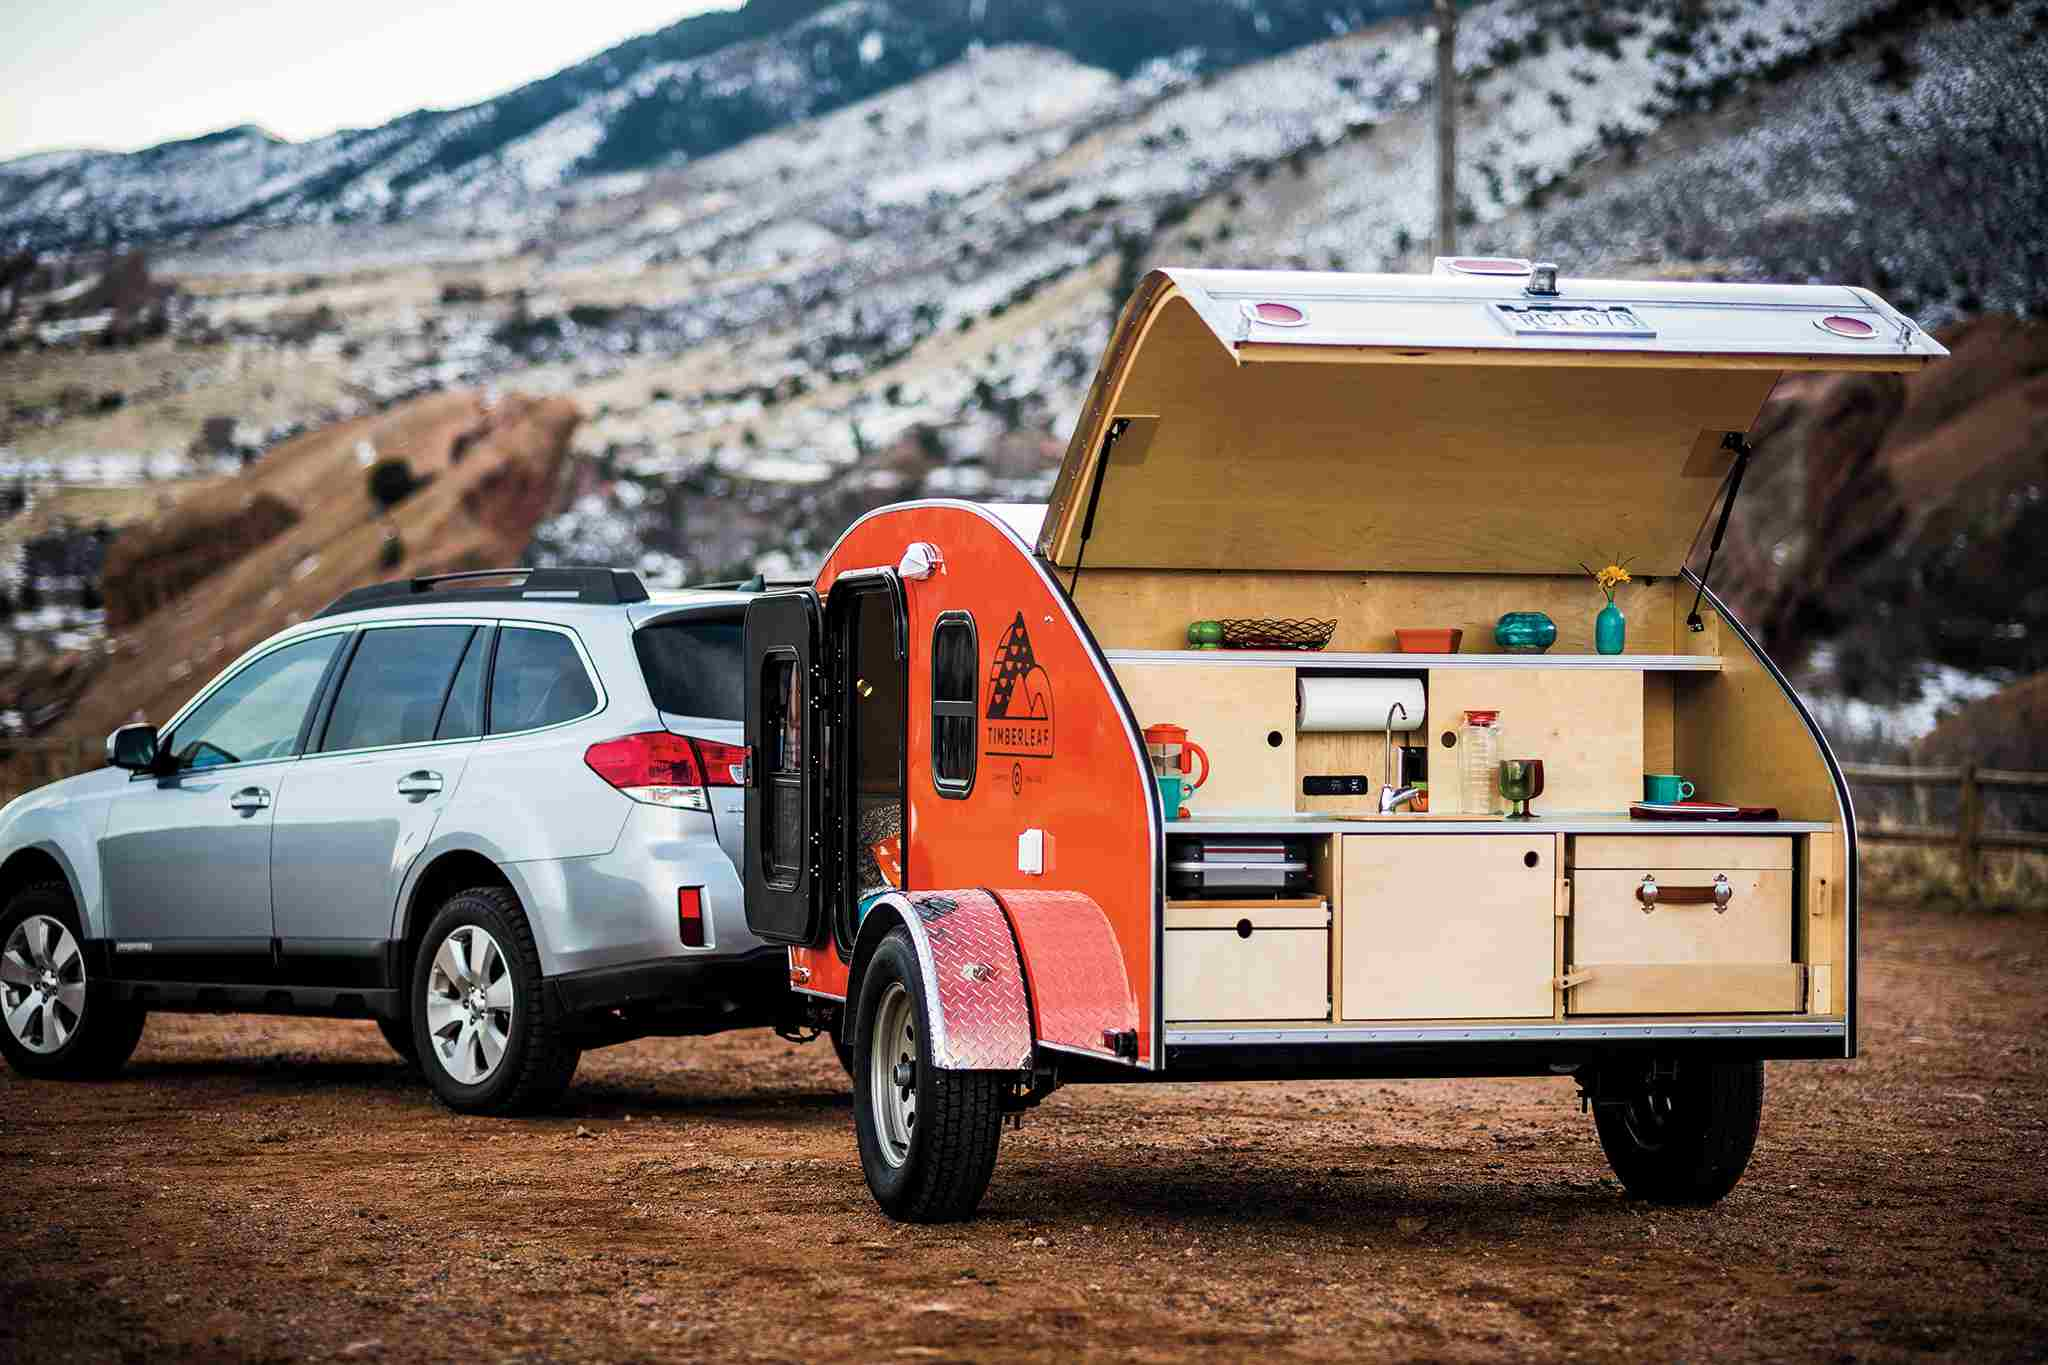 A Timberleaf tear drop camper trailer